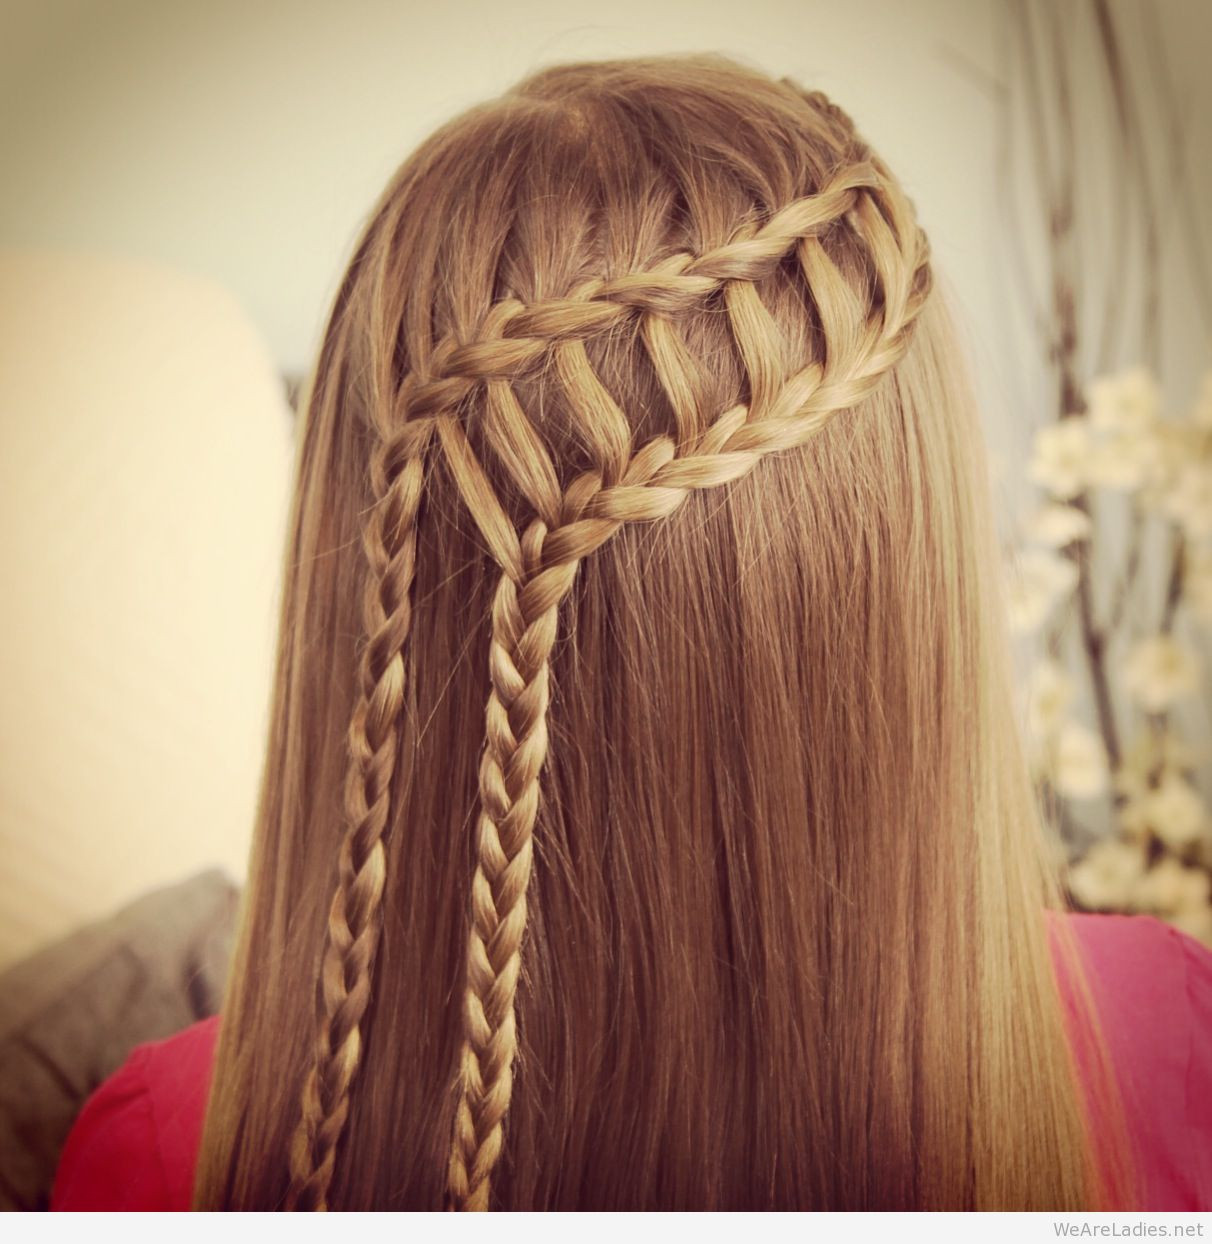 Braiding Hairstyles Tumblr  Amazing Tumblr braids ideas 2015